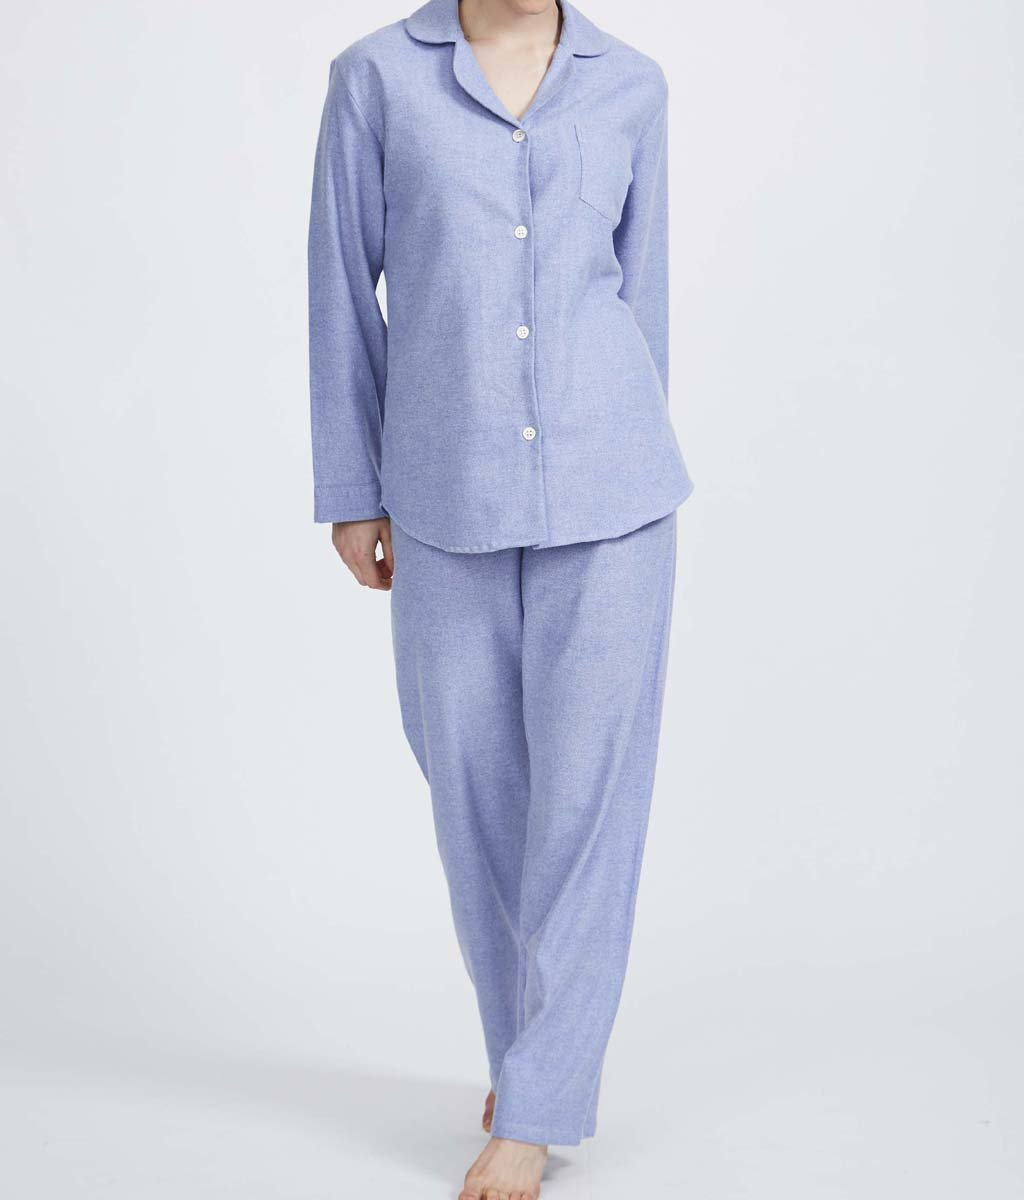 British Boxers Two-Fold Herringbone (Staffordshire Blue) Pyjamas - Sandra Dee - Product Shot - Front